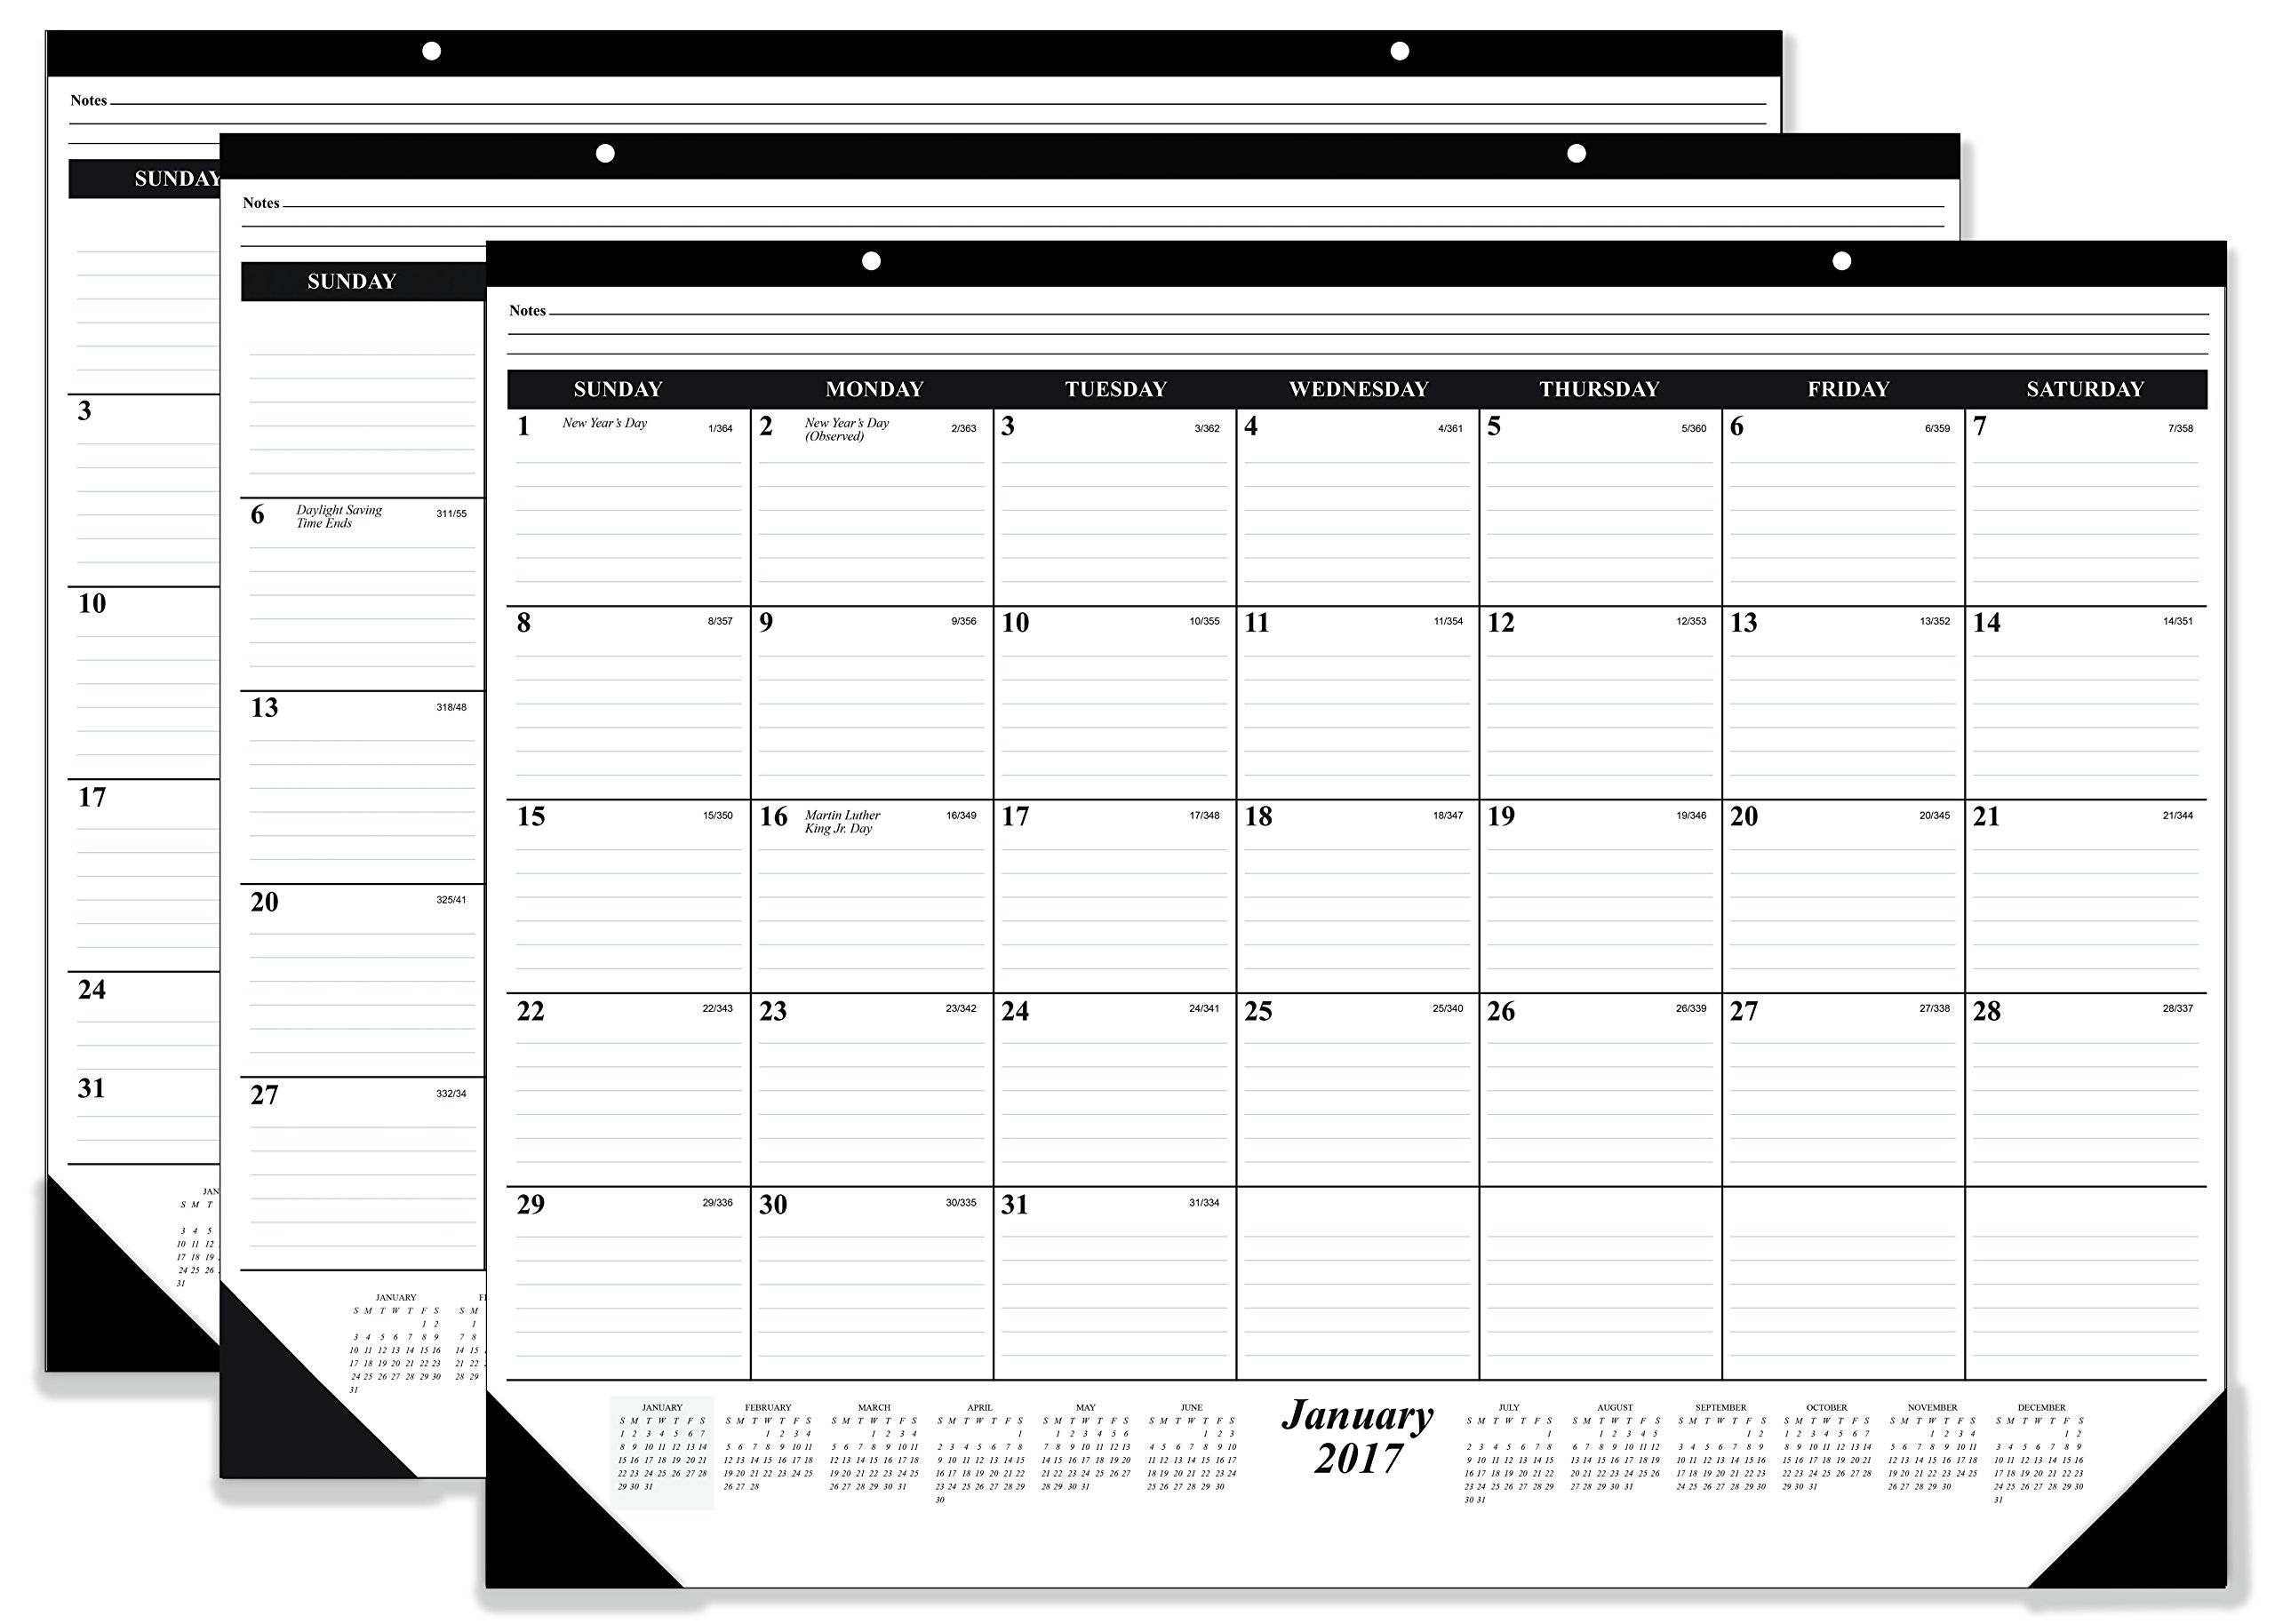 CALENDAR DEAL OF THE YEAR!! 10 PACK DESKPAD CALENDAR 2017 12 Month Calendar, Ruled, 17 x 22 Inches